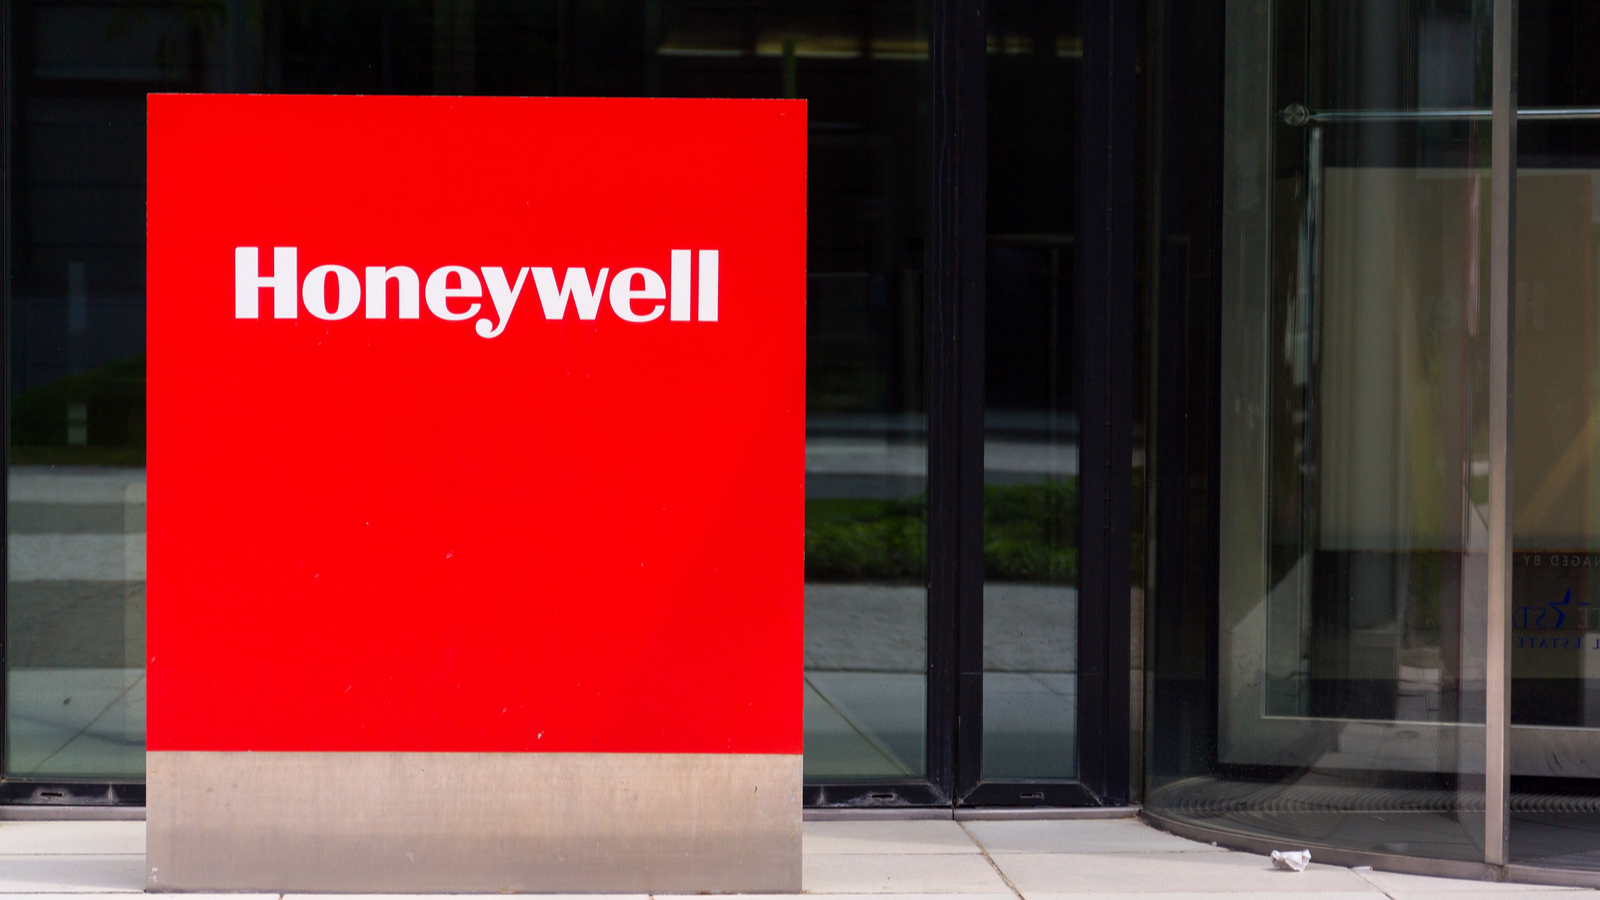 Honeywell Teams Up With Microsoft To Reshape The Industrial Workplace